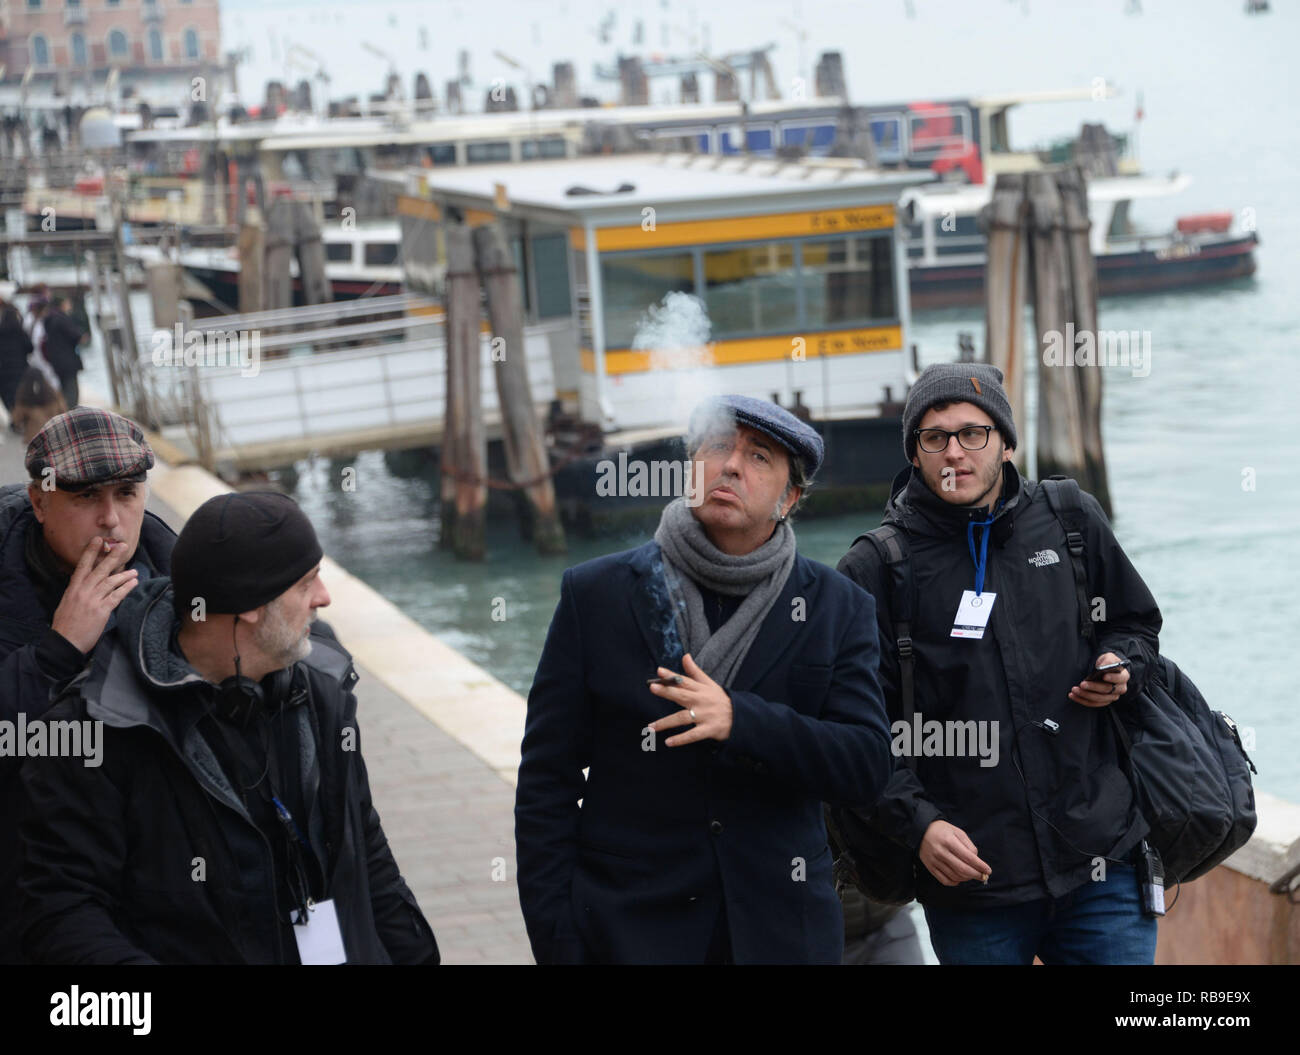 "Venice, Italy. 08th January, 2019. The Italian director Paolo Sorrentino (in the middle while smoking the cigar) walks with the crew during a break from the set of the tv show ""The New Pope"" in Venice, Italy. Andrea Merola / Awakening / Alamy Live News Stock Photo"